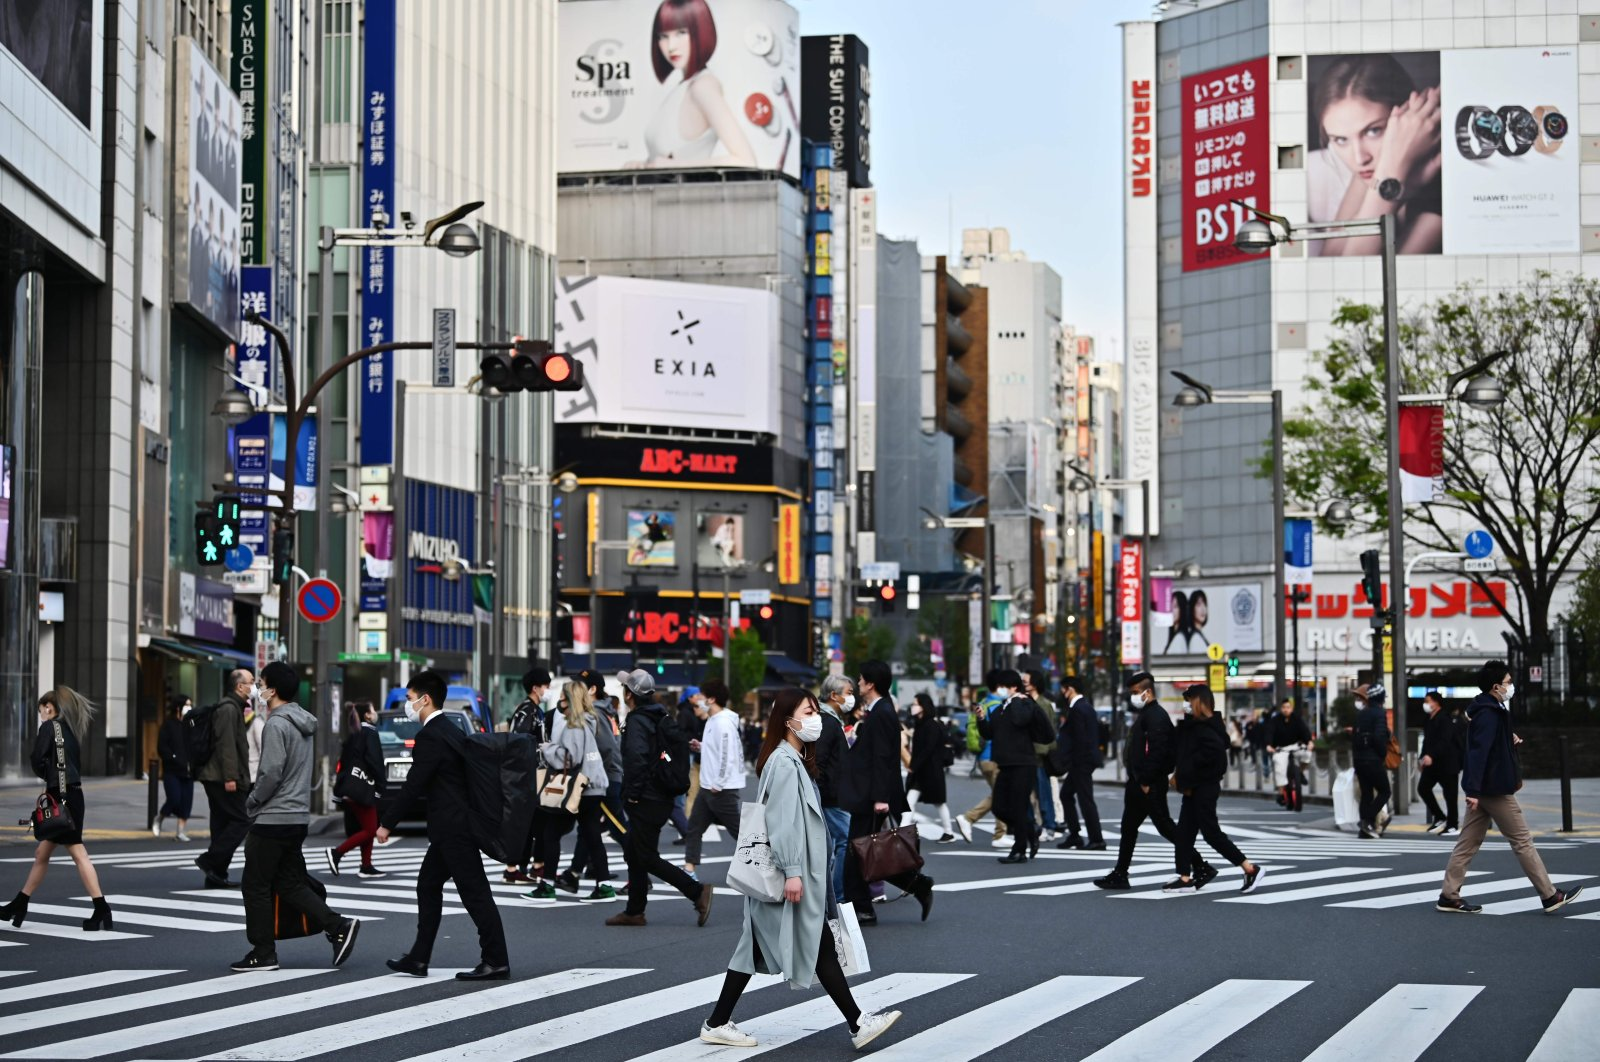 People cross a street in Tokyo's Shinjuku district, April 7, 2020. (AFP Photo)